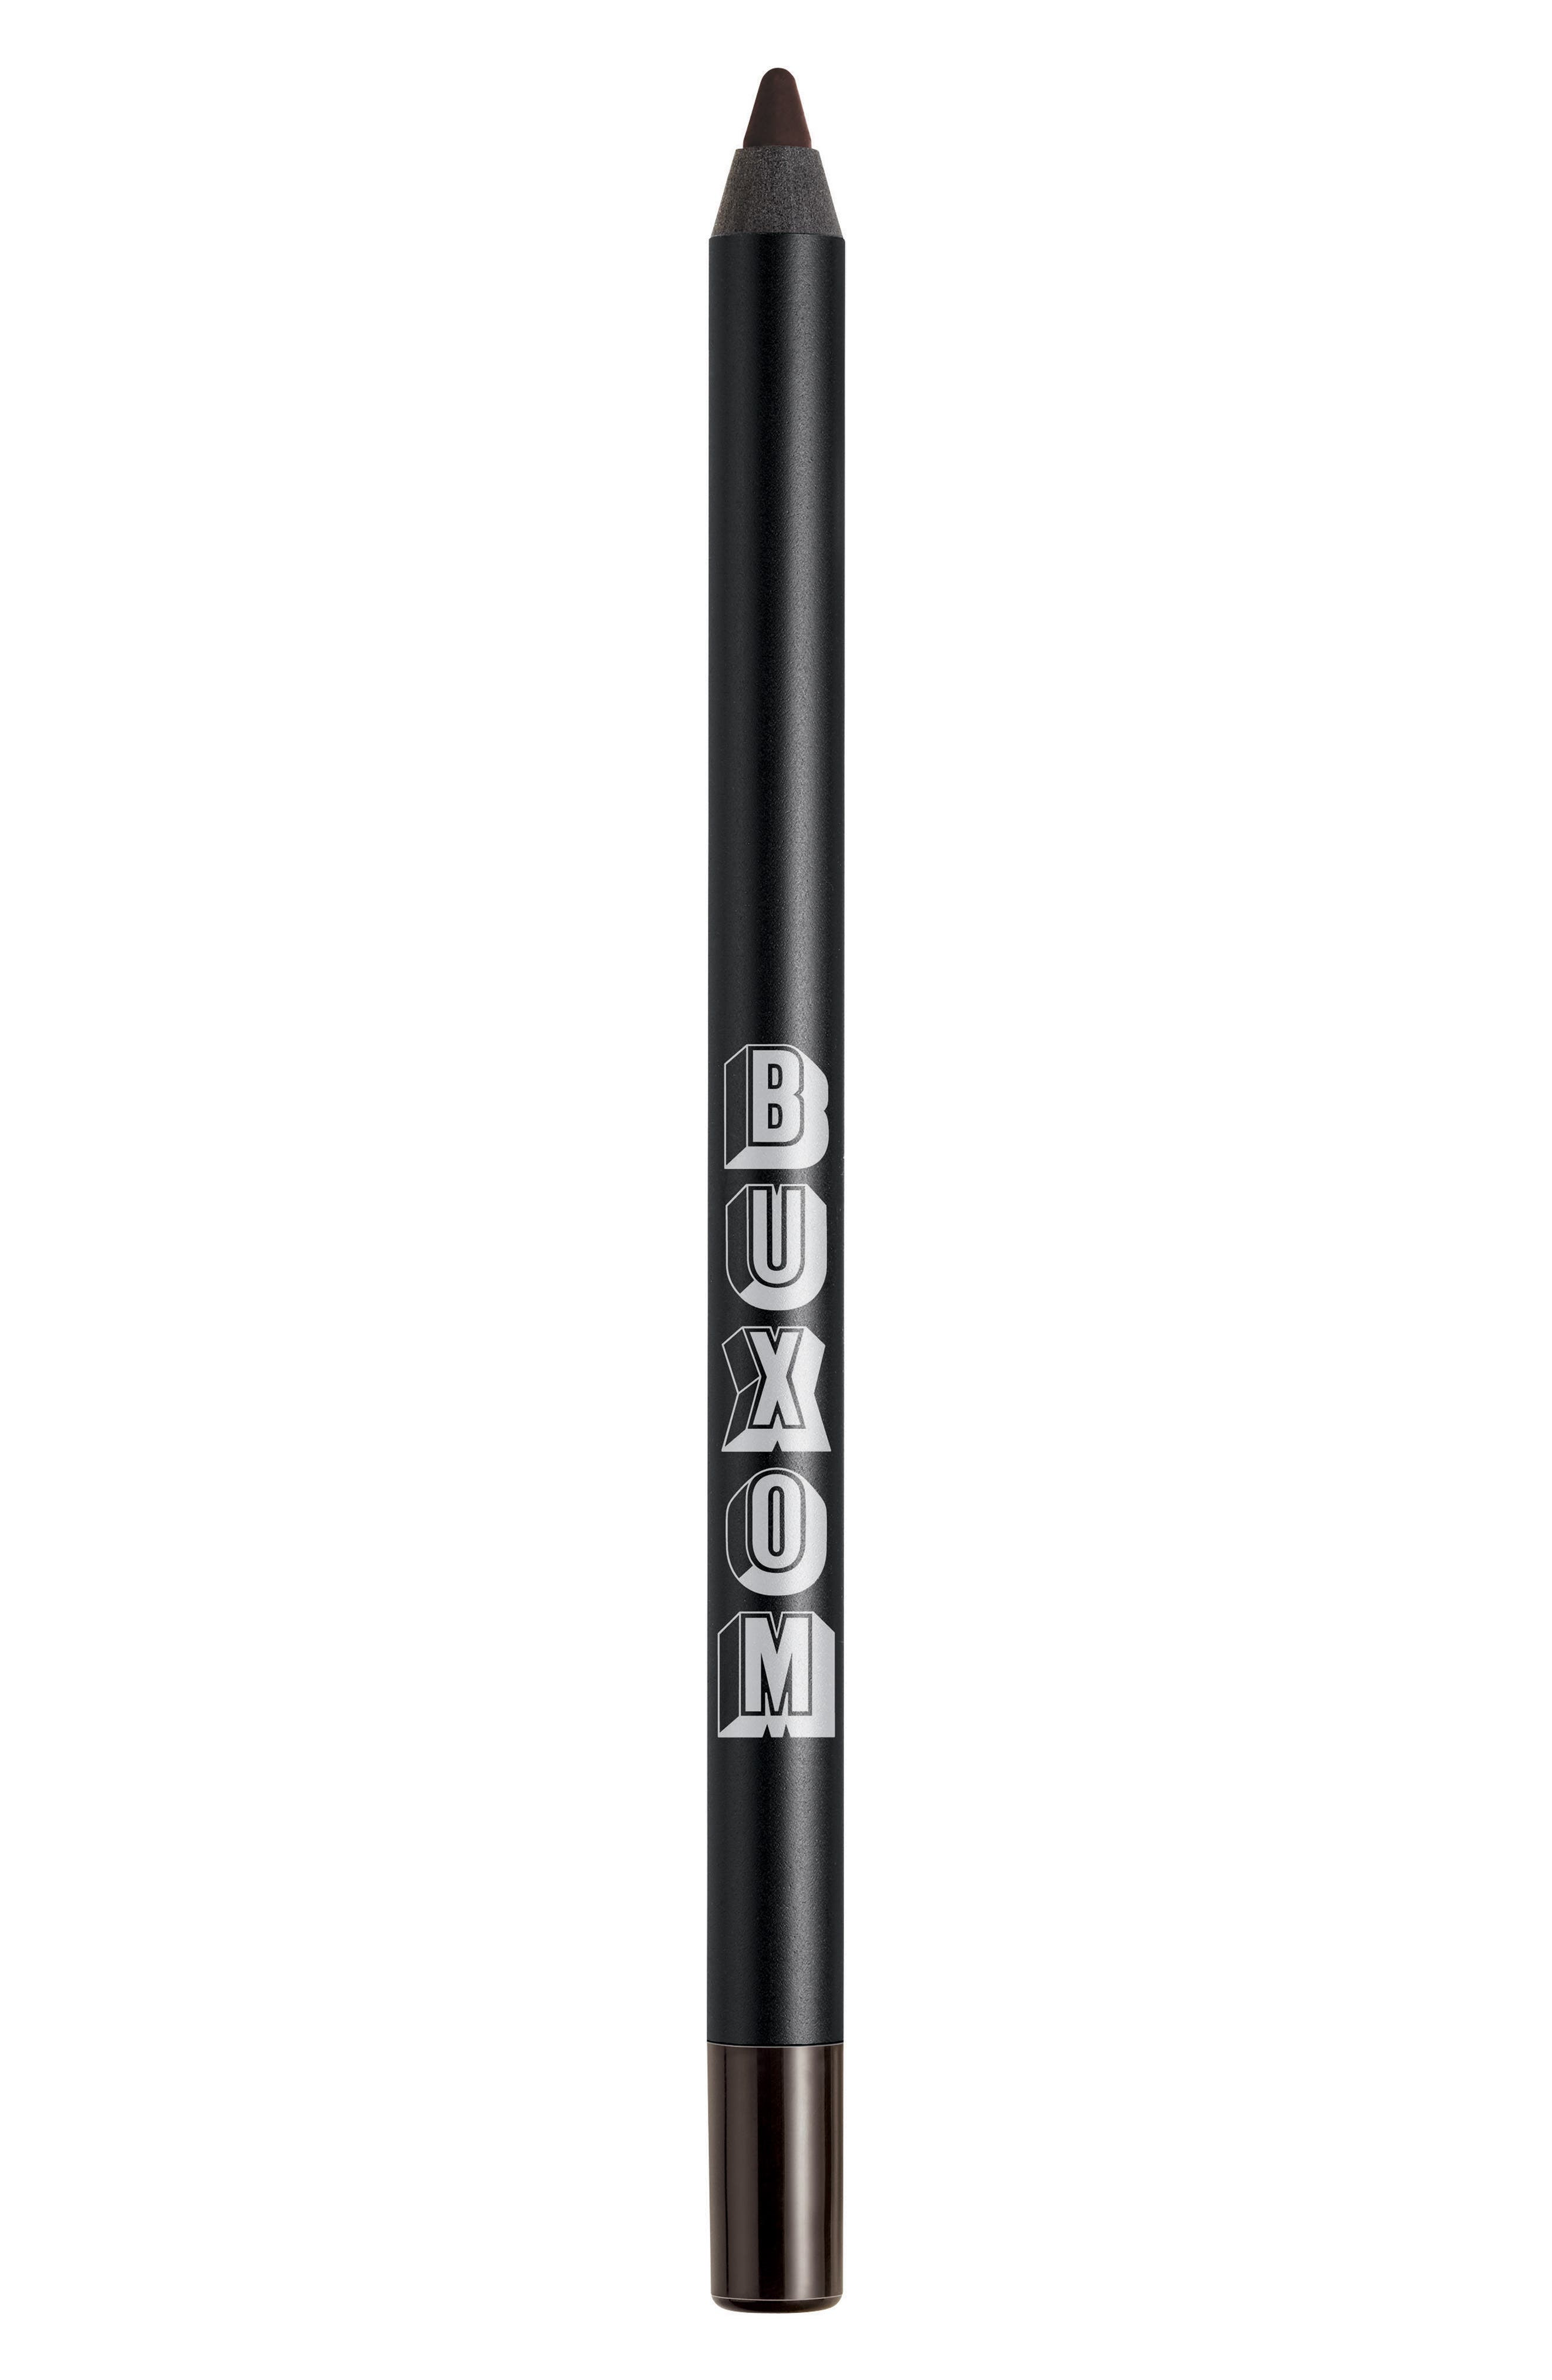 Buxom Hold The Line Waterproof Eyeliner - Here Is My Number